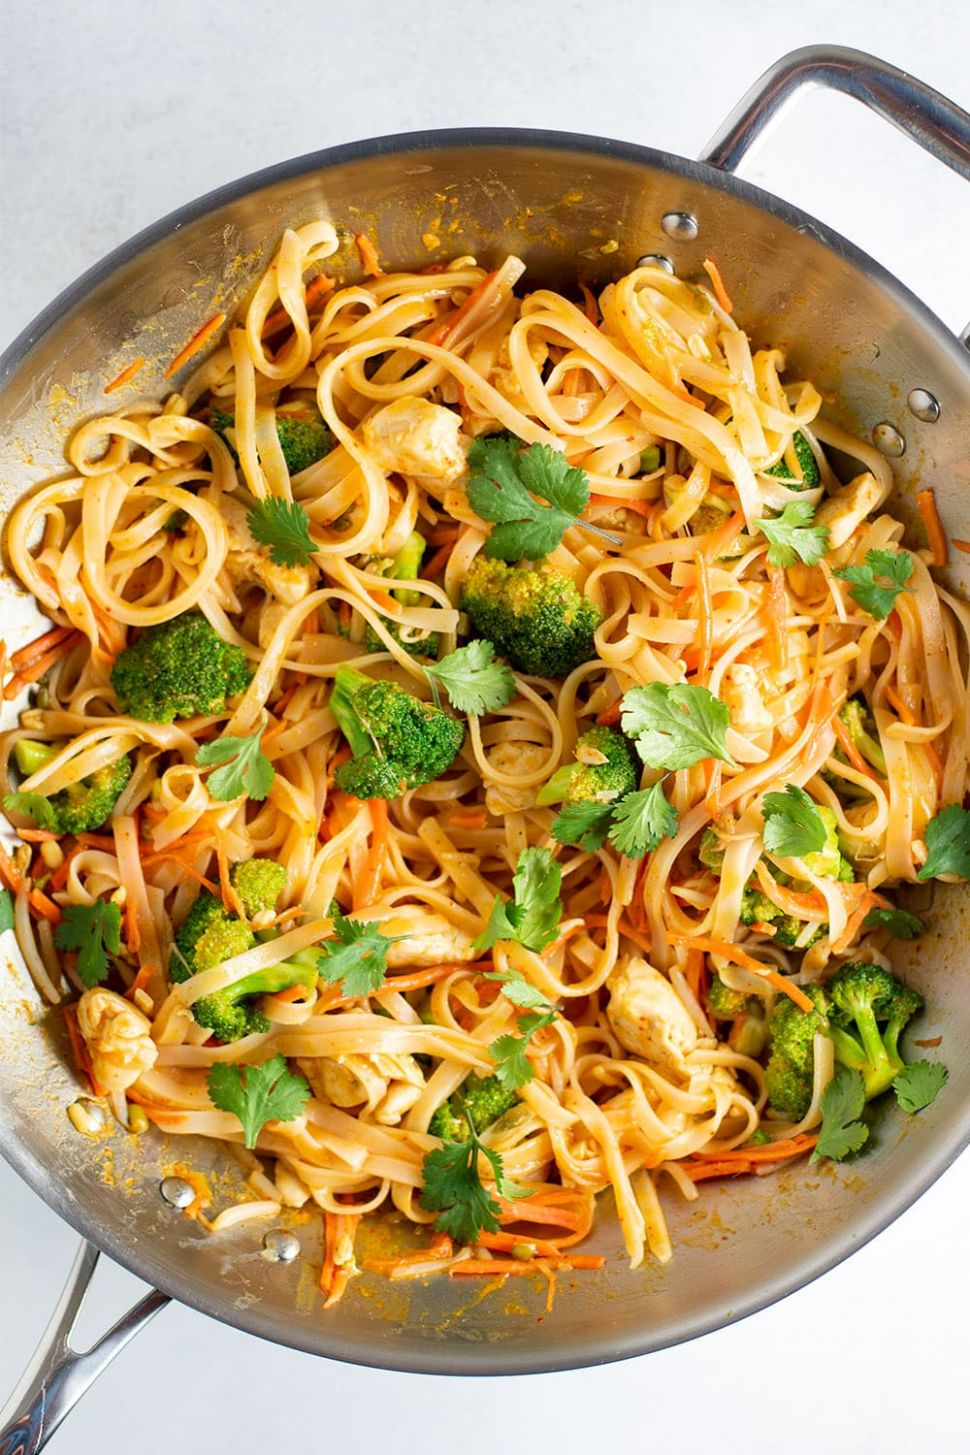 Spicy Coconut Curry Chicken and Noodles Recipe - Recipes Rice Noodles Coconut Milk